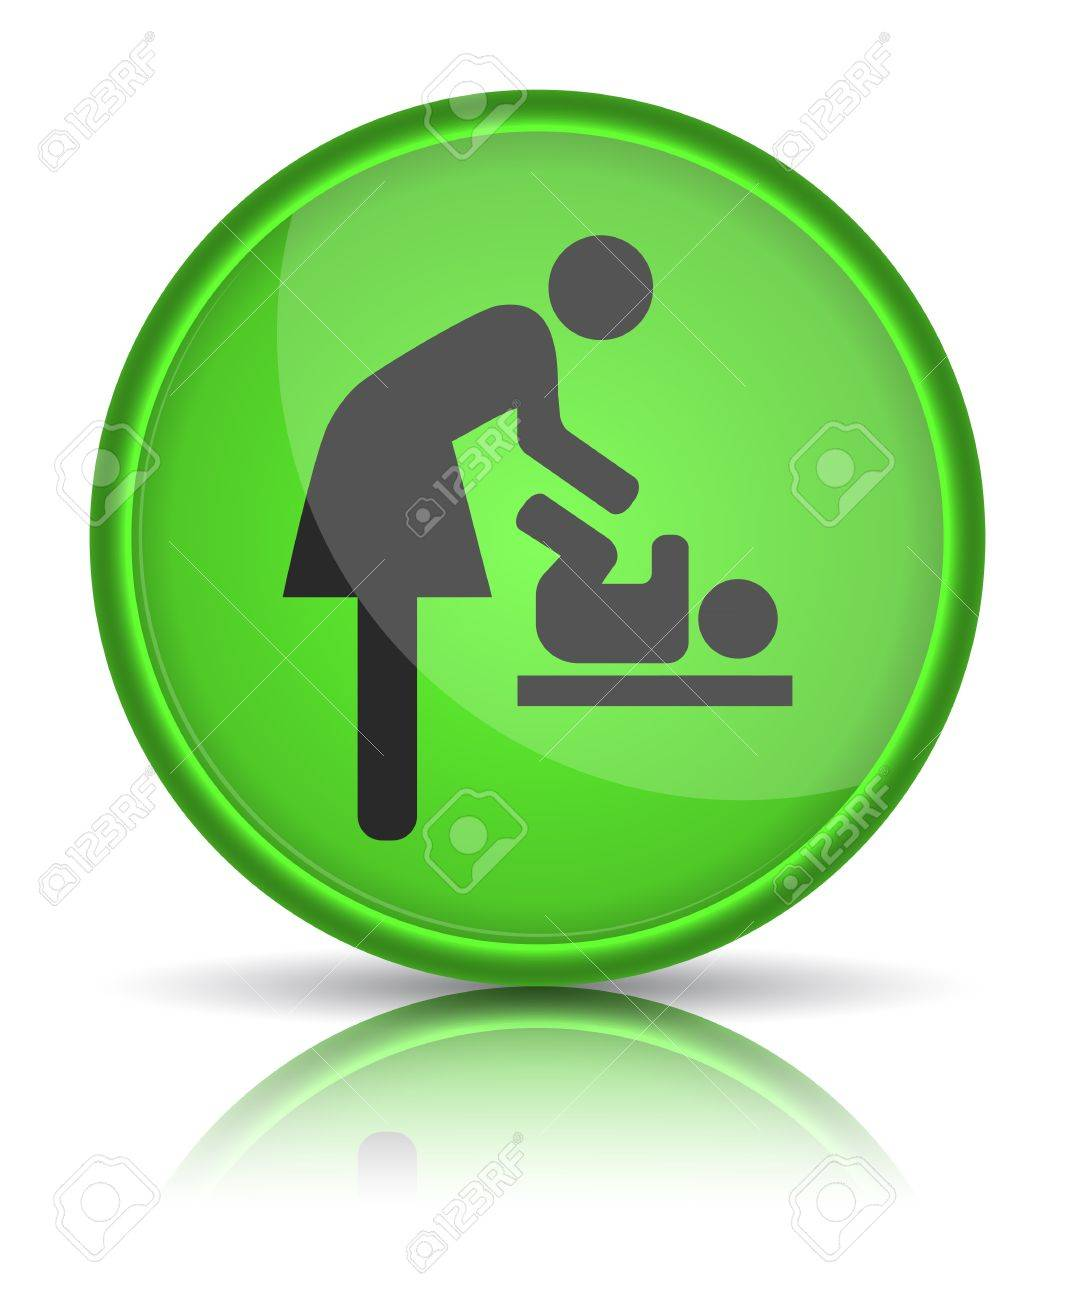 Icon toilet symbol for women and baby baby changing royalty free icon toilet symbol for women and baby baby changing stock vector 18595607 biocorpaavc Gallery